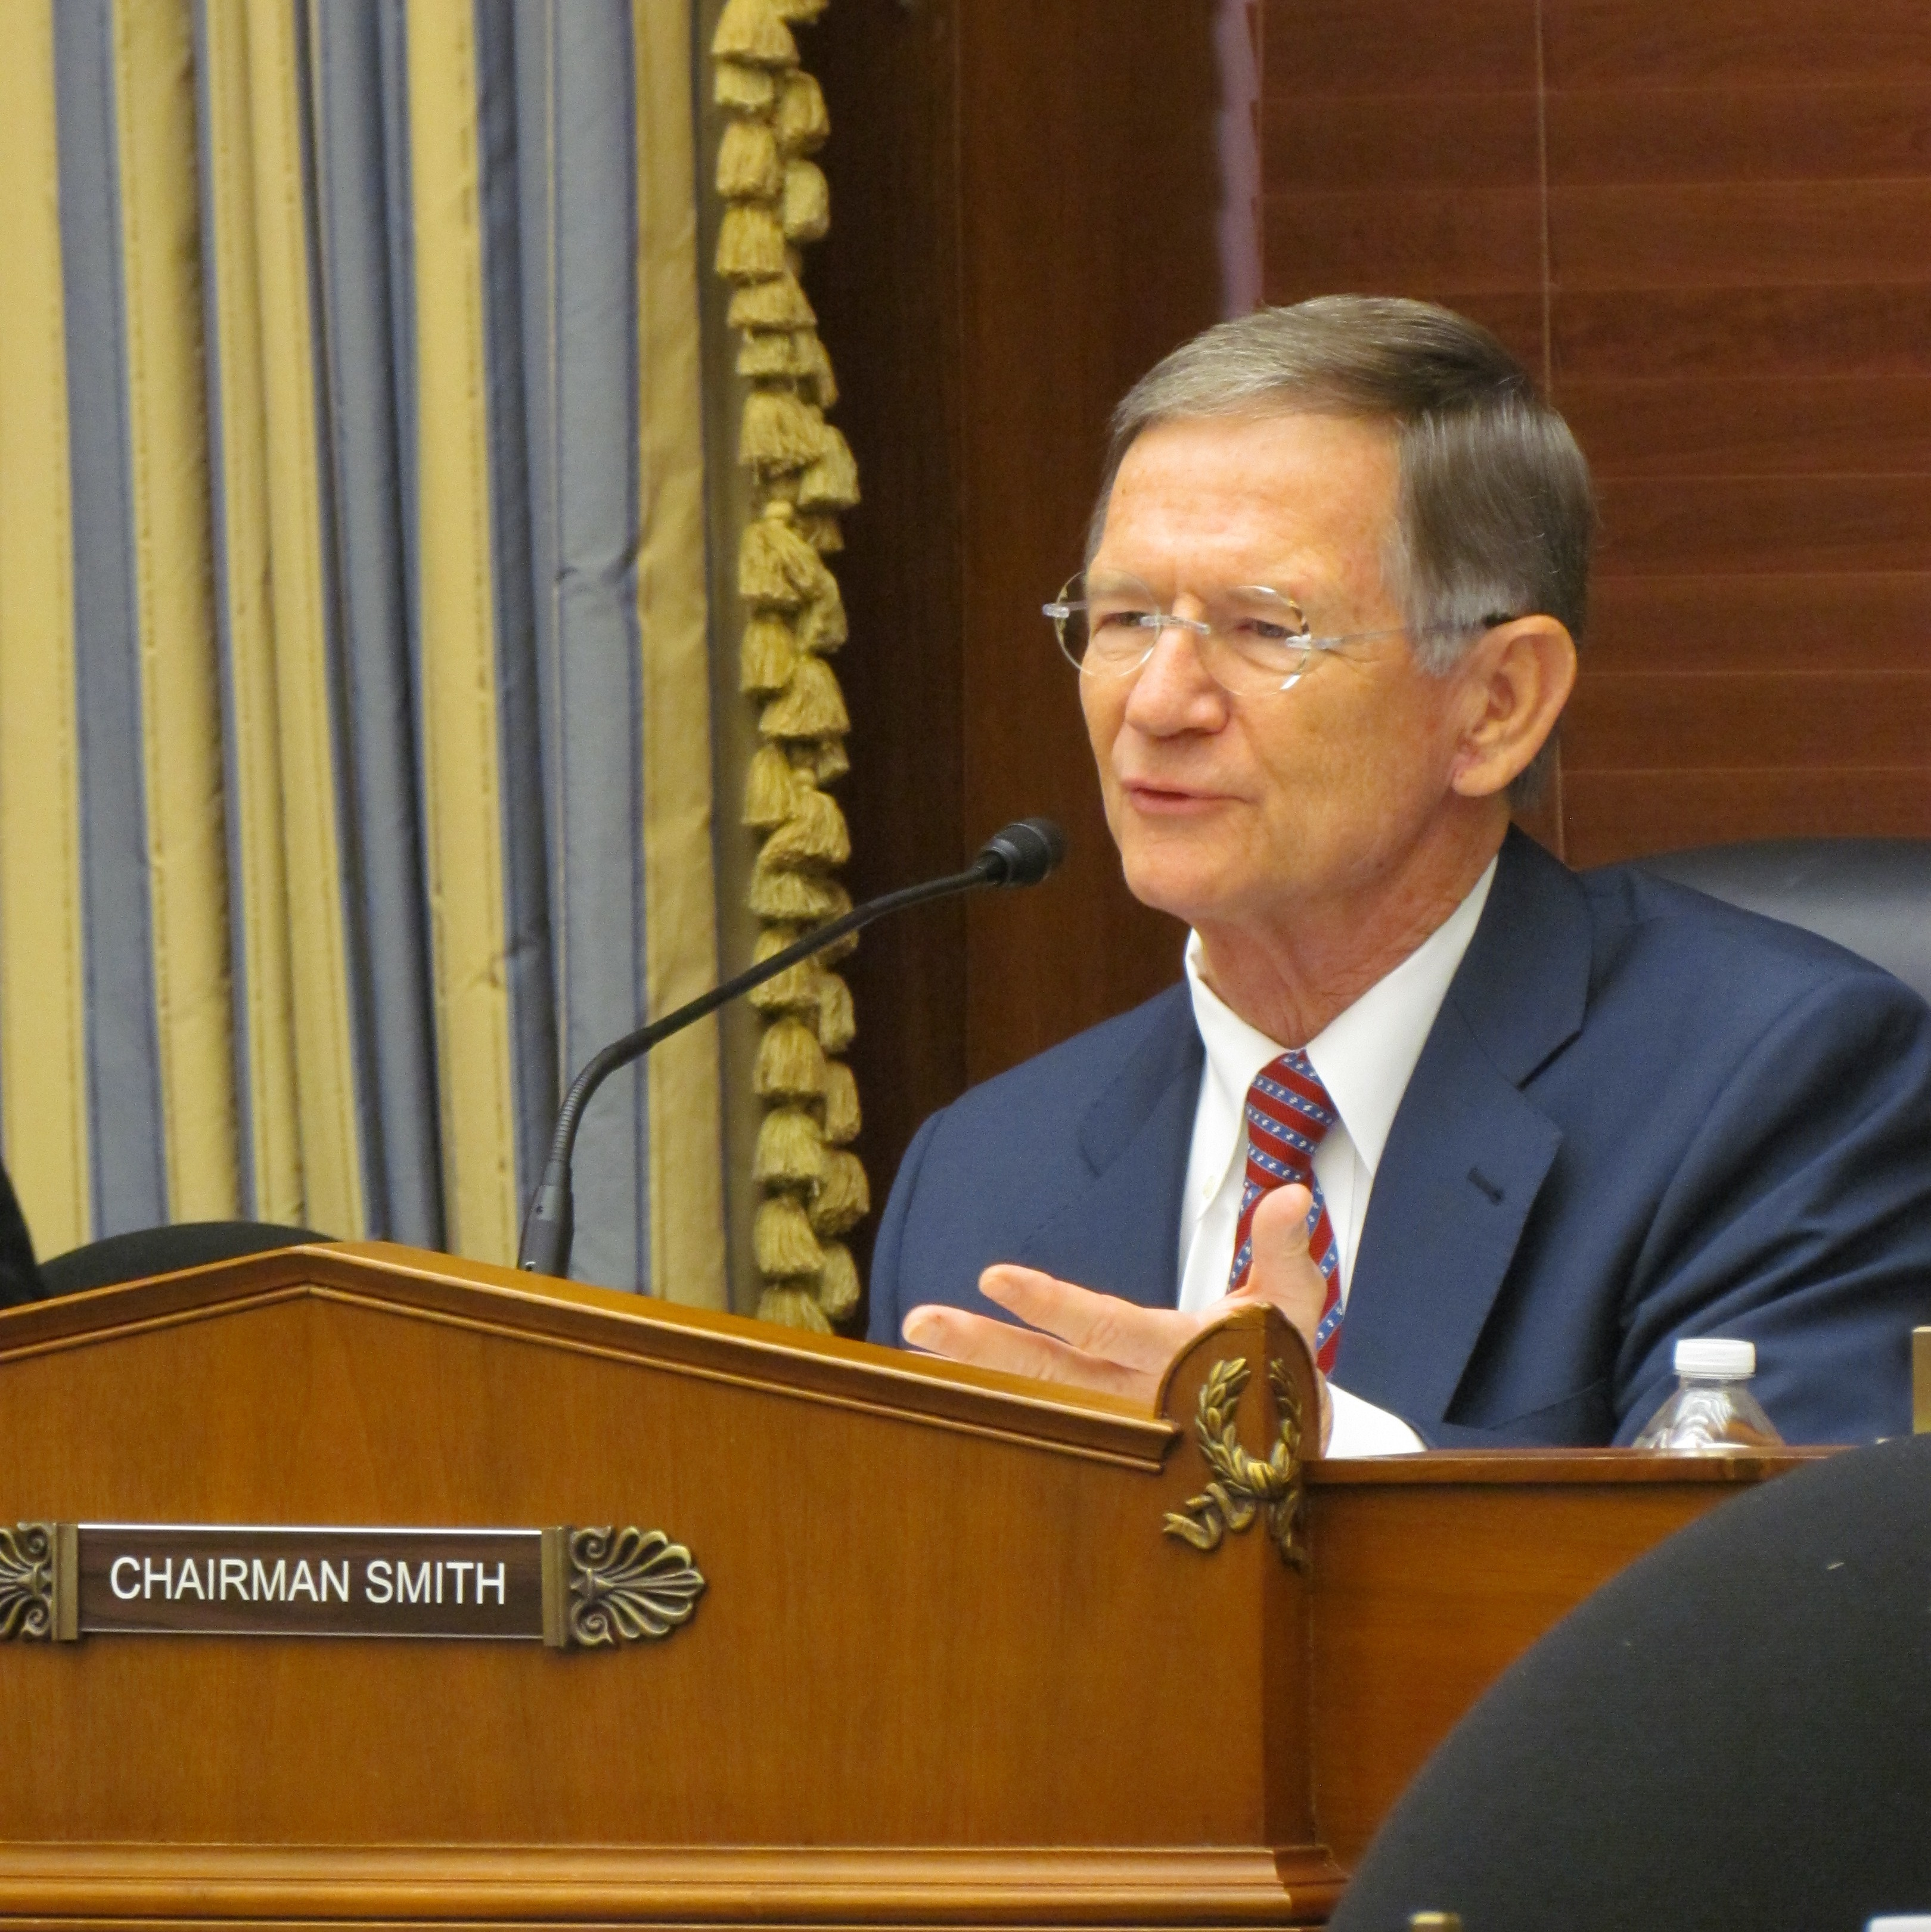 Policymaker Interview Series: Rep. Lamar Smith, Chairman of the House Committee on Science, Space, and Technology